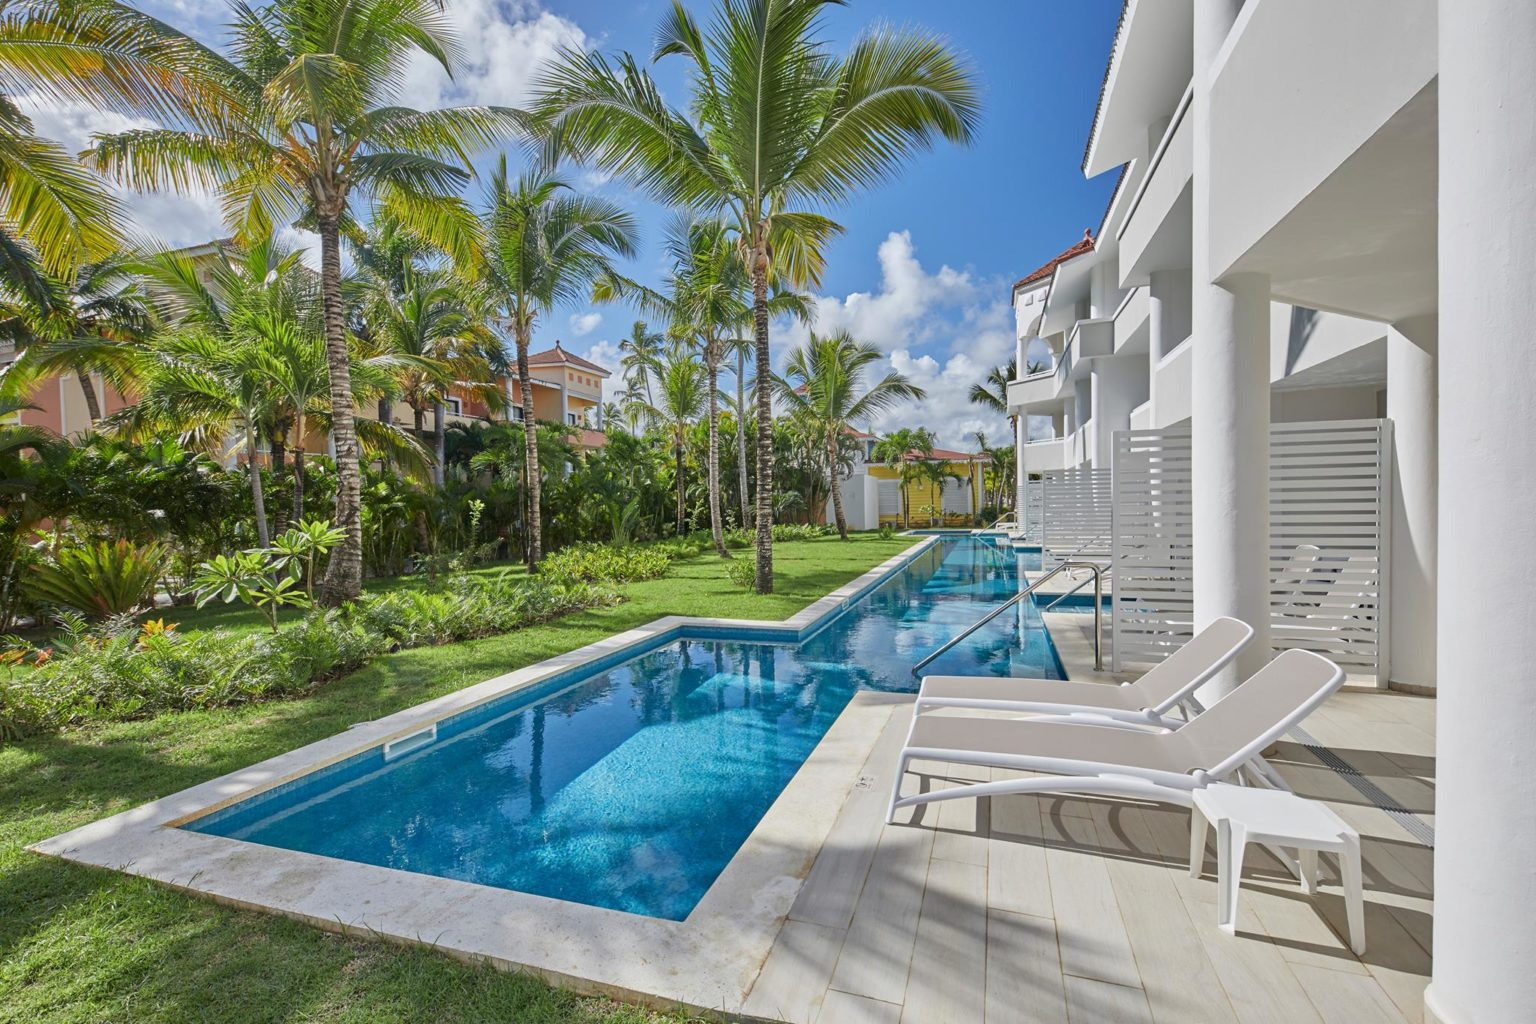 Bahia Principe Luxury Ambar - photo de couverture